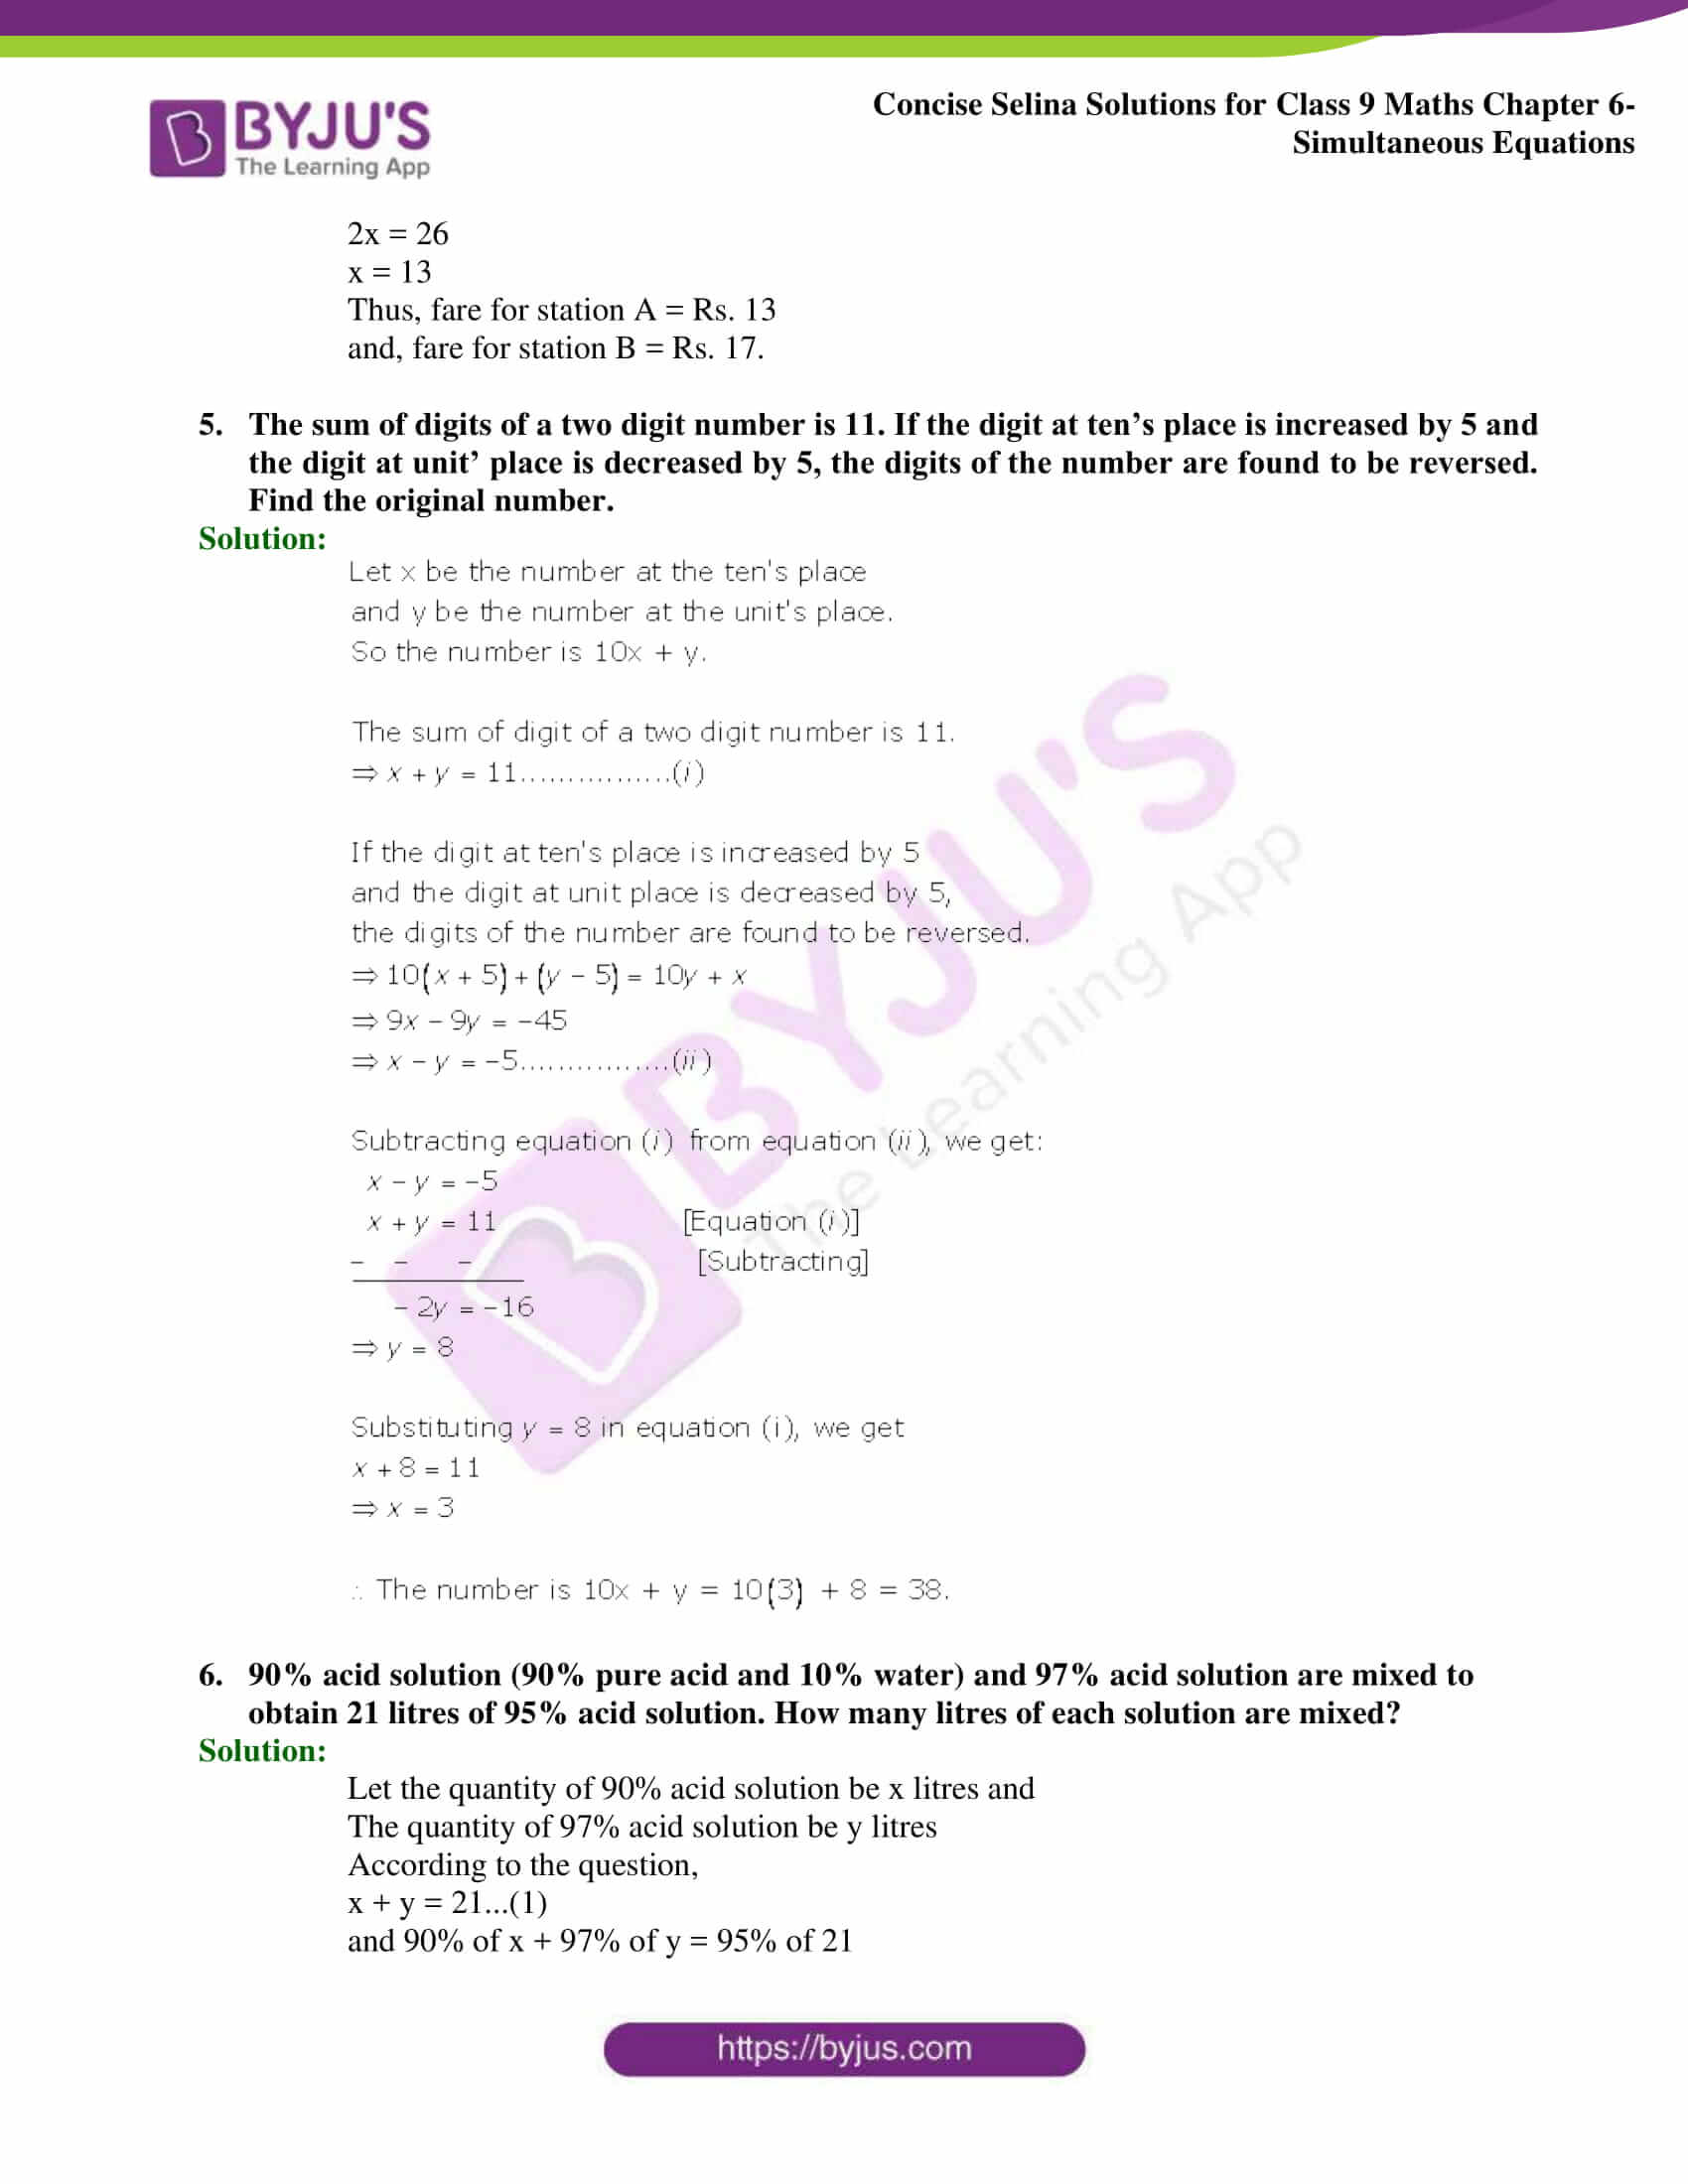 Selina Solutions Class 9 Maths Chapter 6 Simultaneous Equations part 55